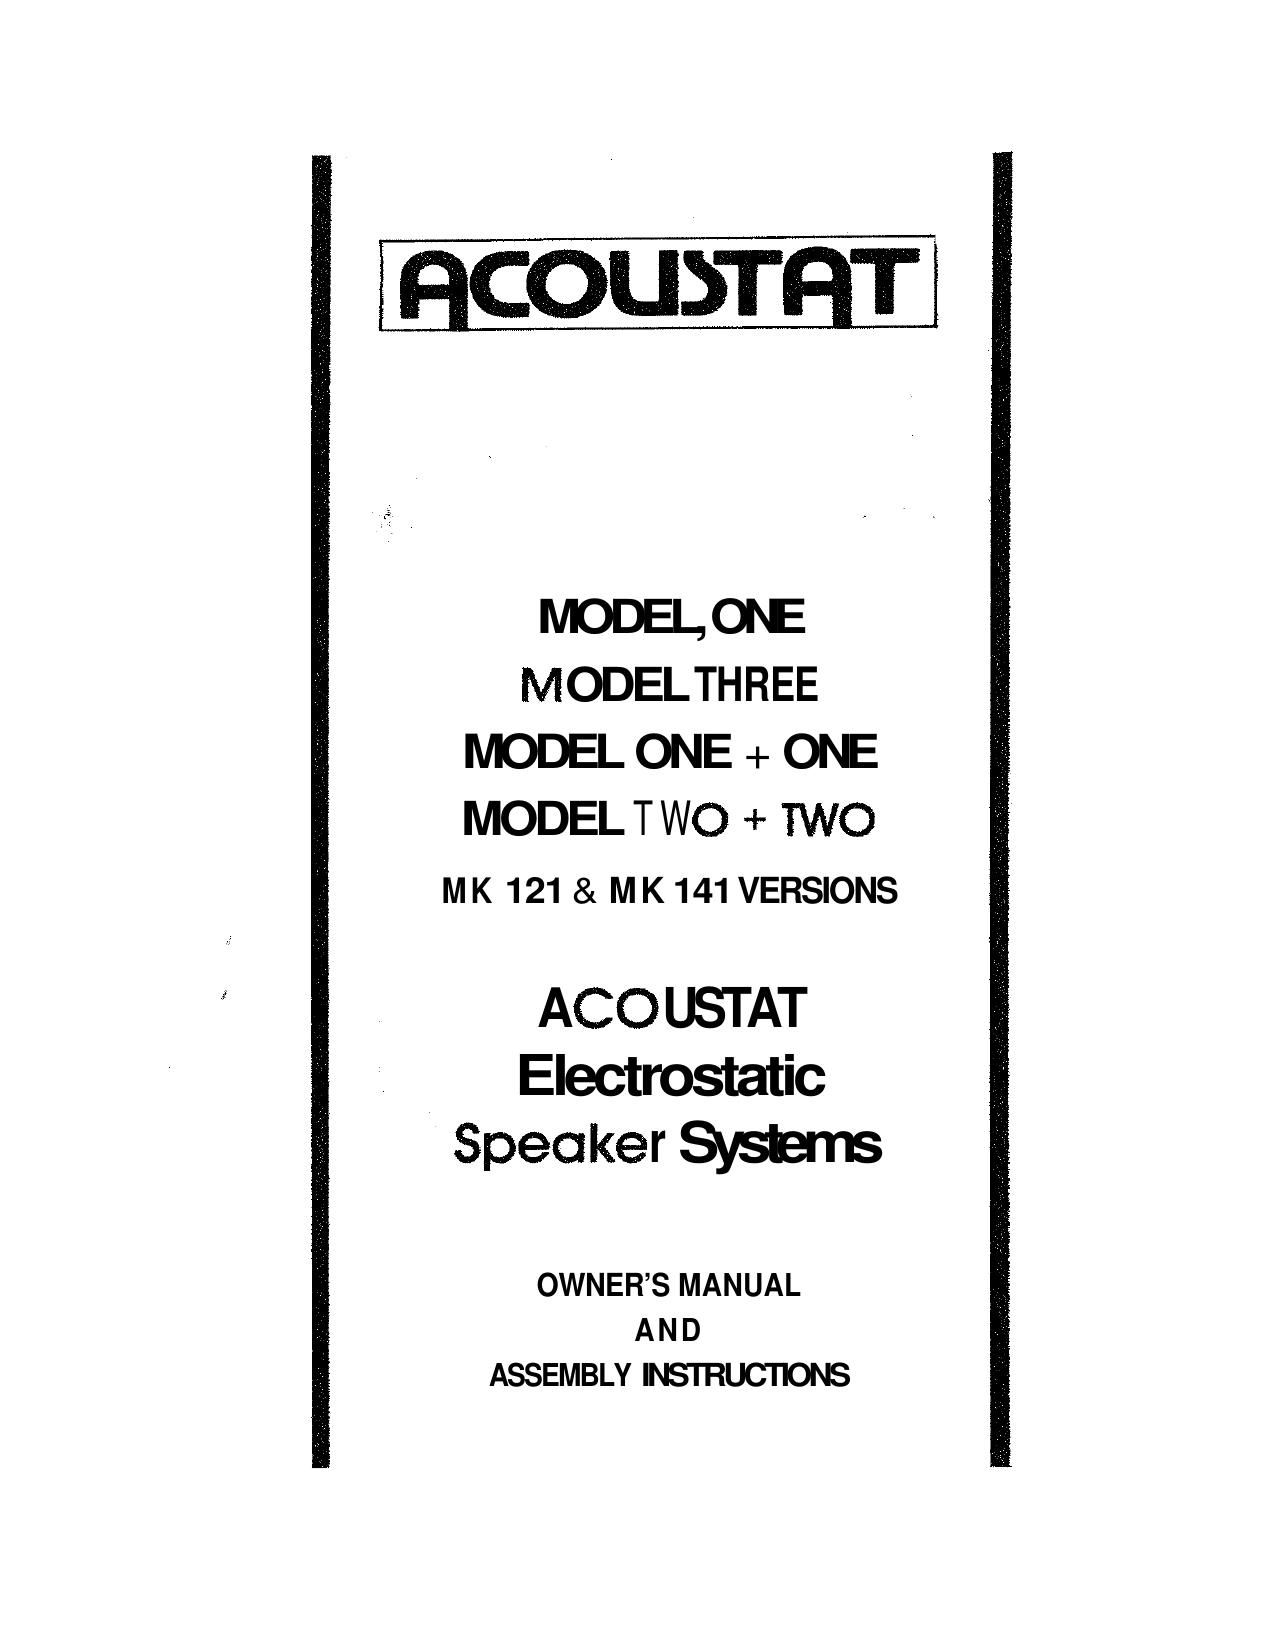 Acoustat MK 141 Owners Manual